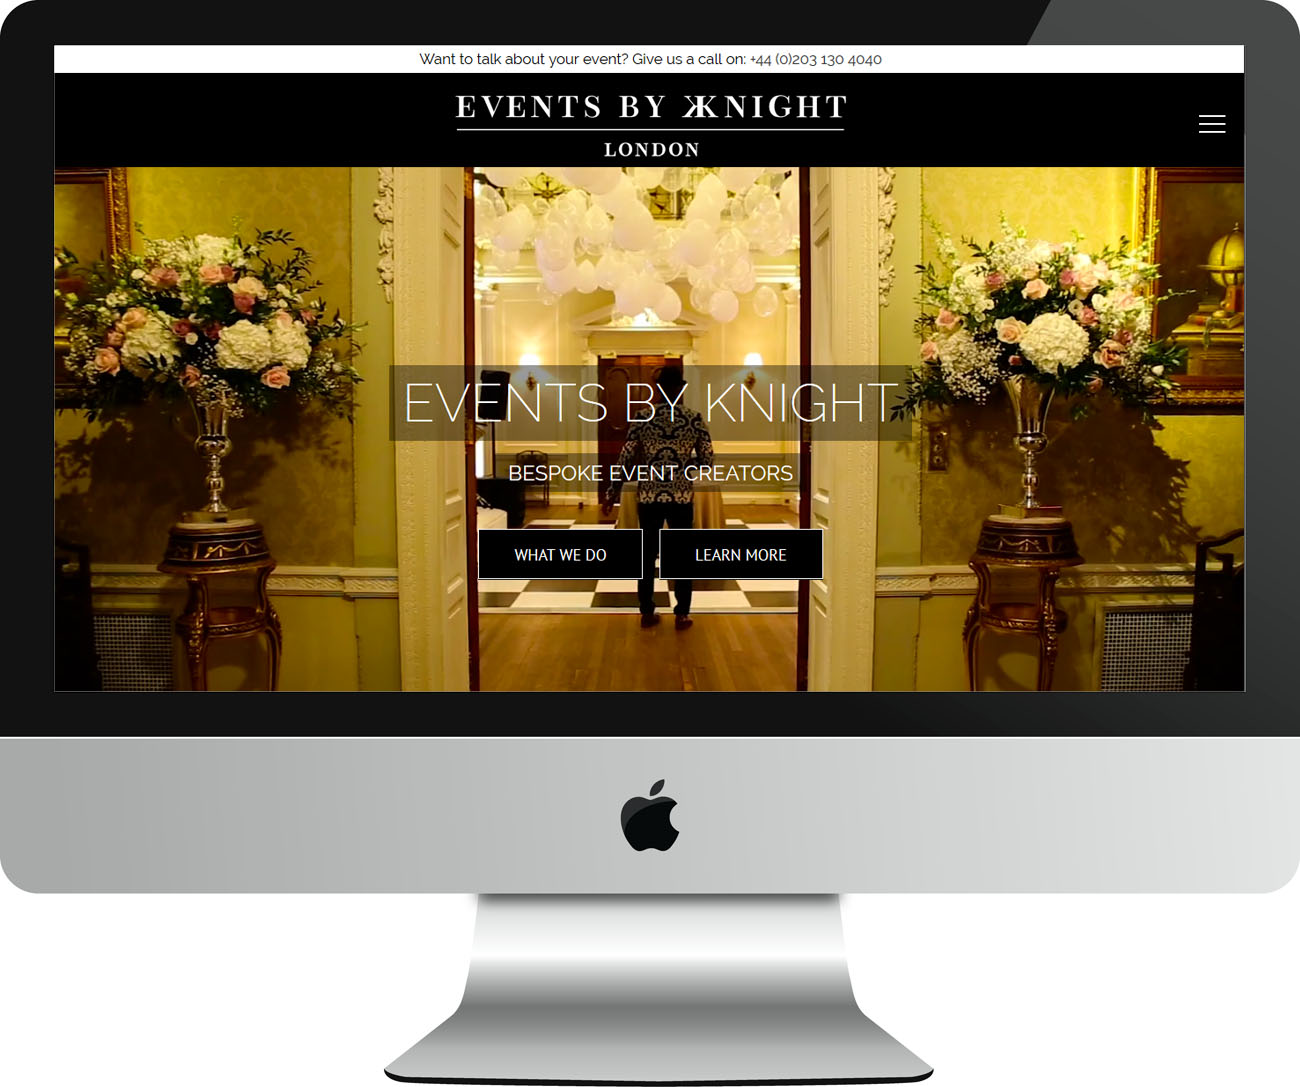 Event Planning Website Design Events by Knight - iMac View - The Complete Web Co Design